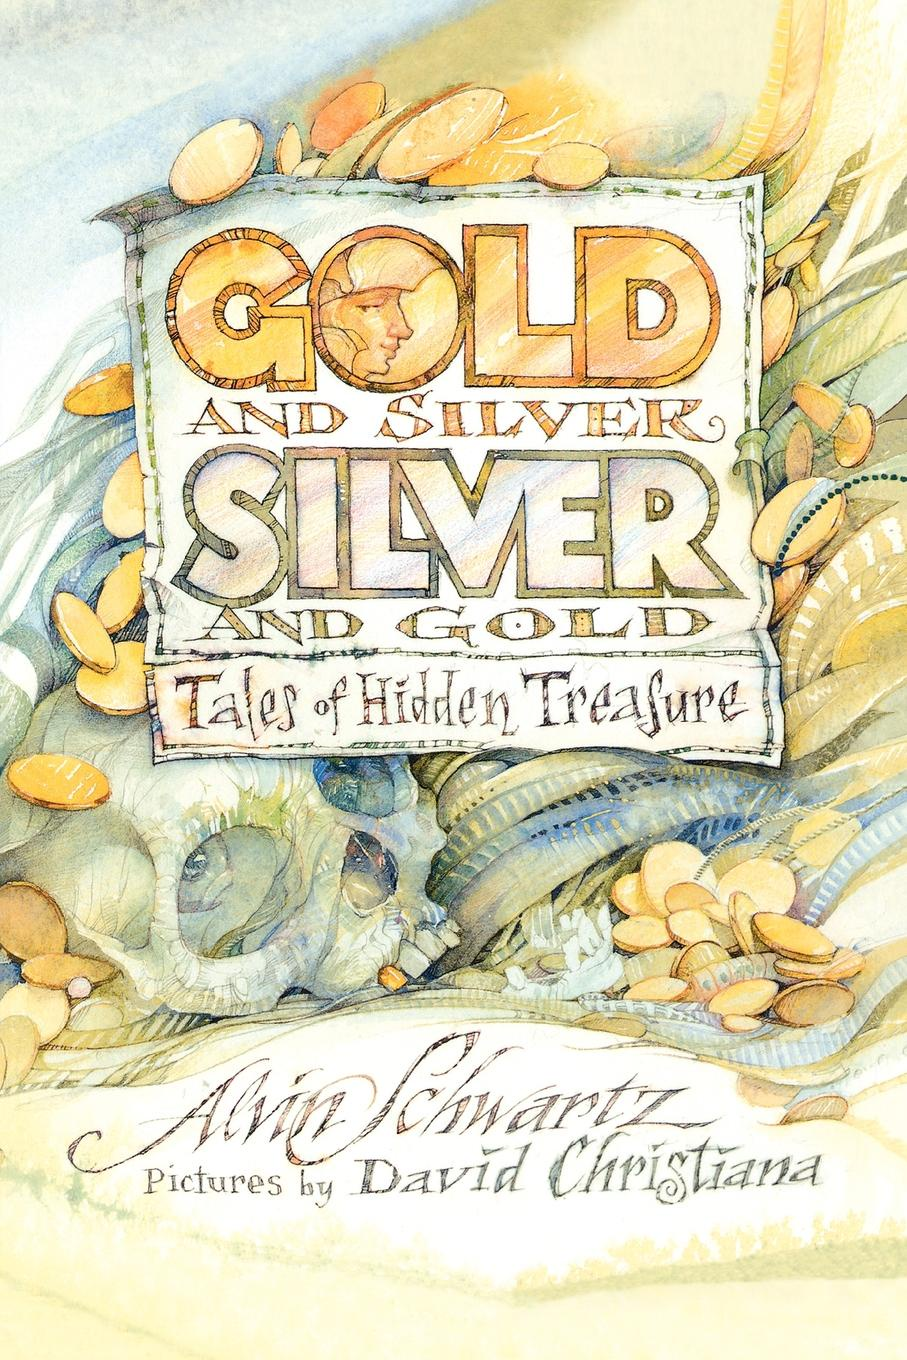 Alvin Schwartz Gold and Silver Silver and Gold Tales of Hidden Treasure